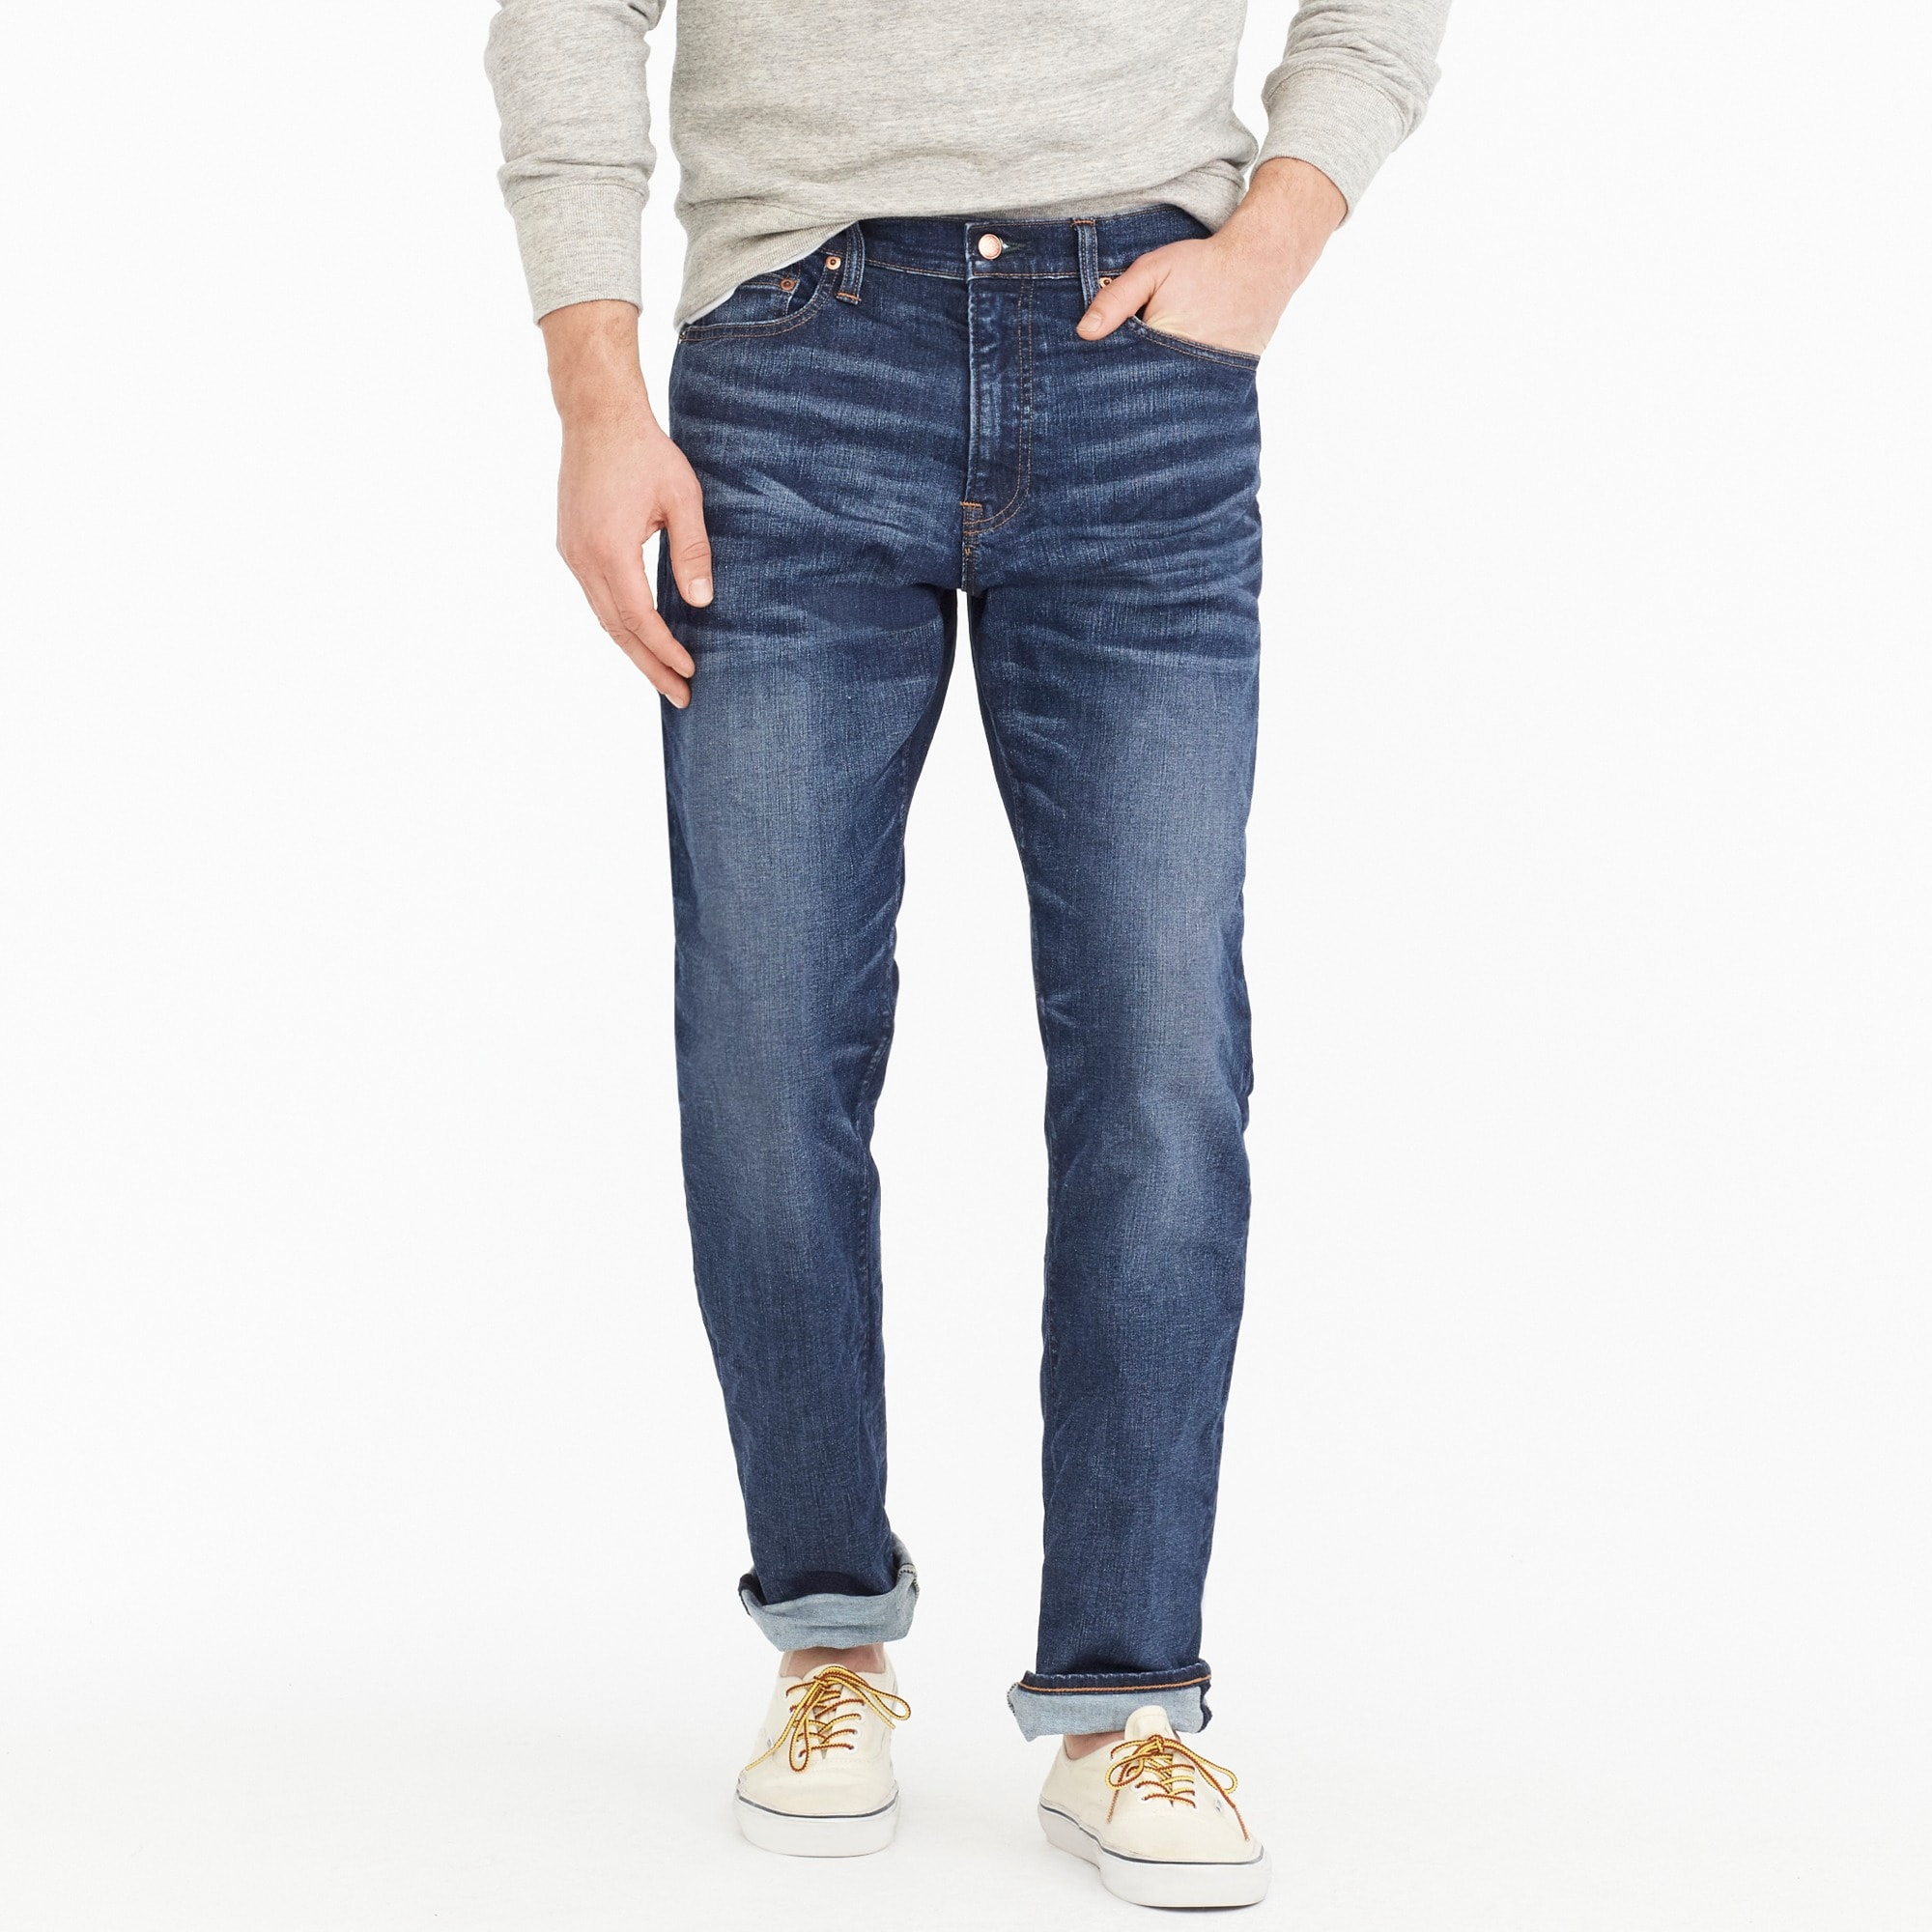 1040 Athletic-fit stretch jean in Dalton wash men denim c